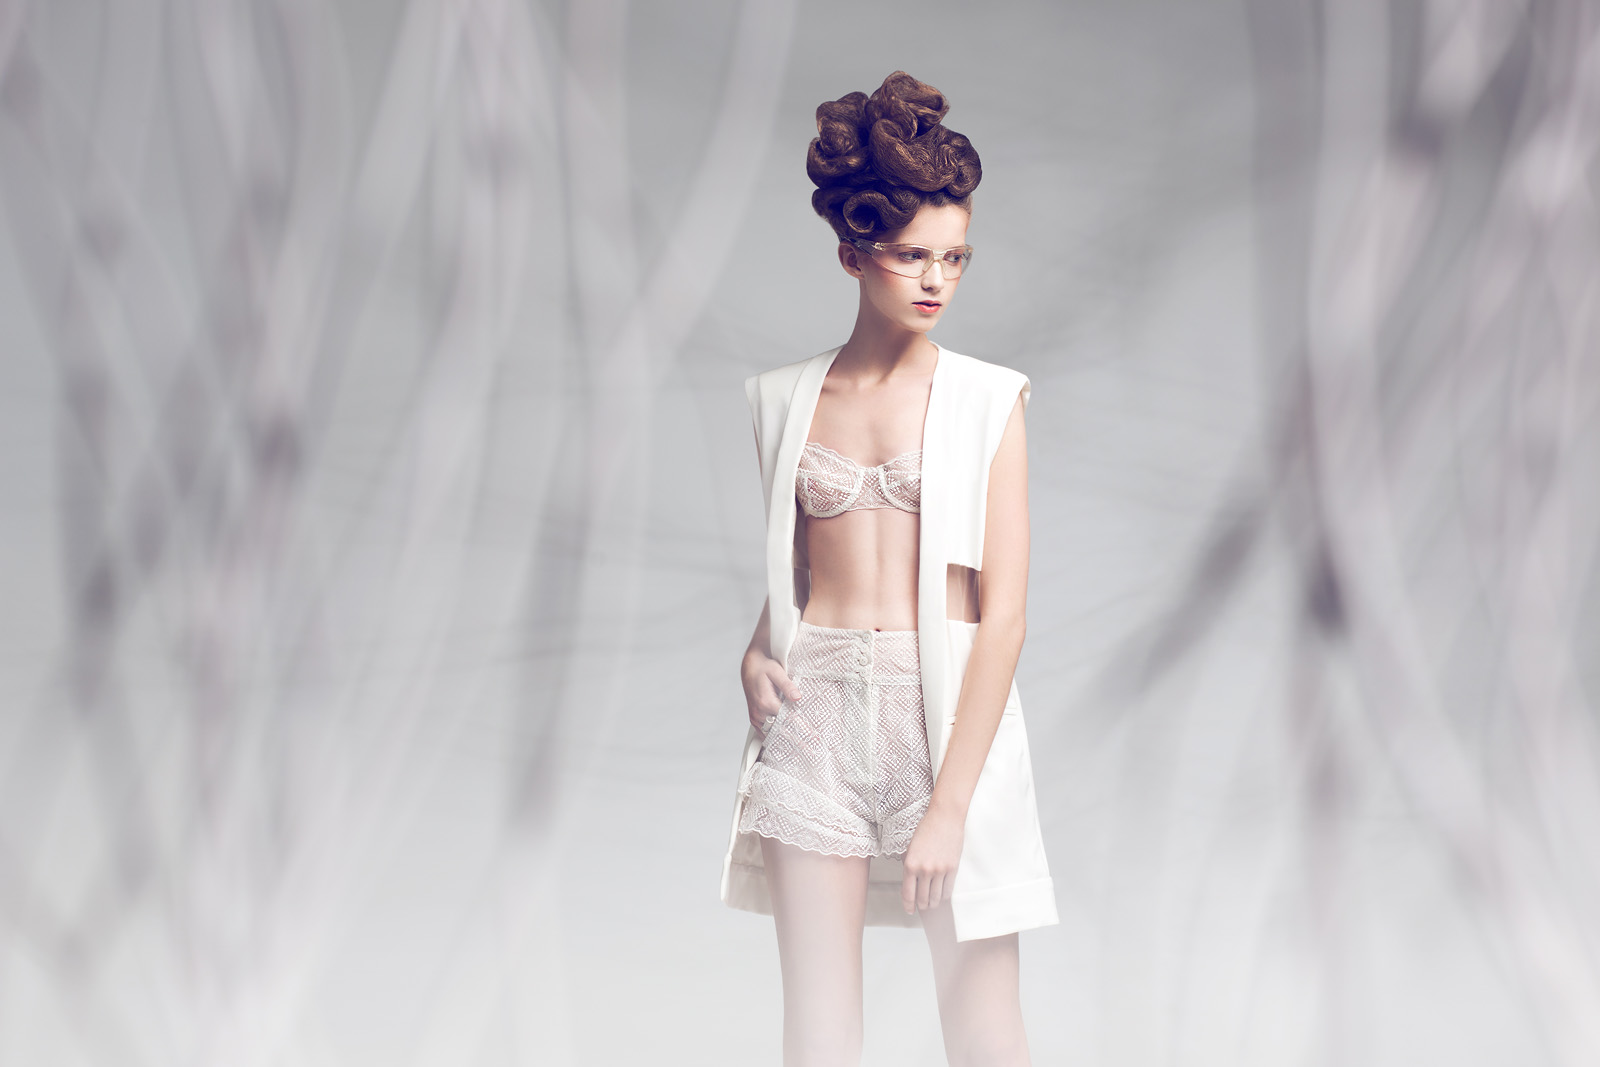 Celebrites Nova Patra naked (23 photos), Topless, Fappening, Twitter, in bikini 2019